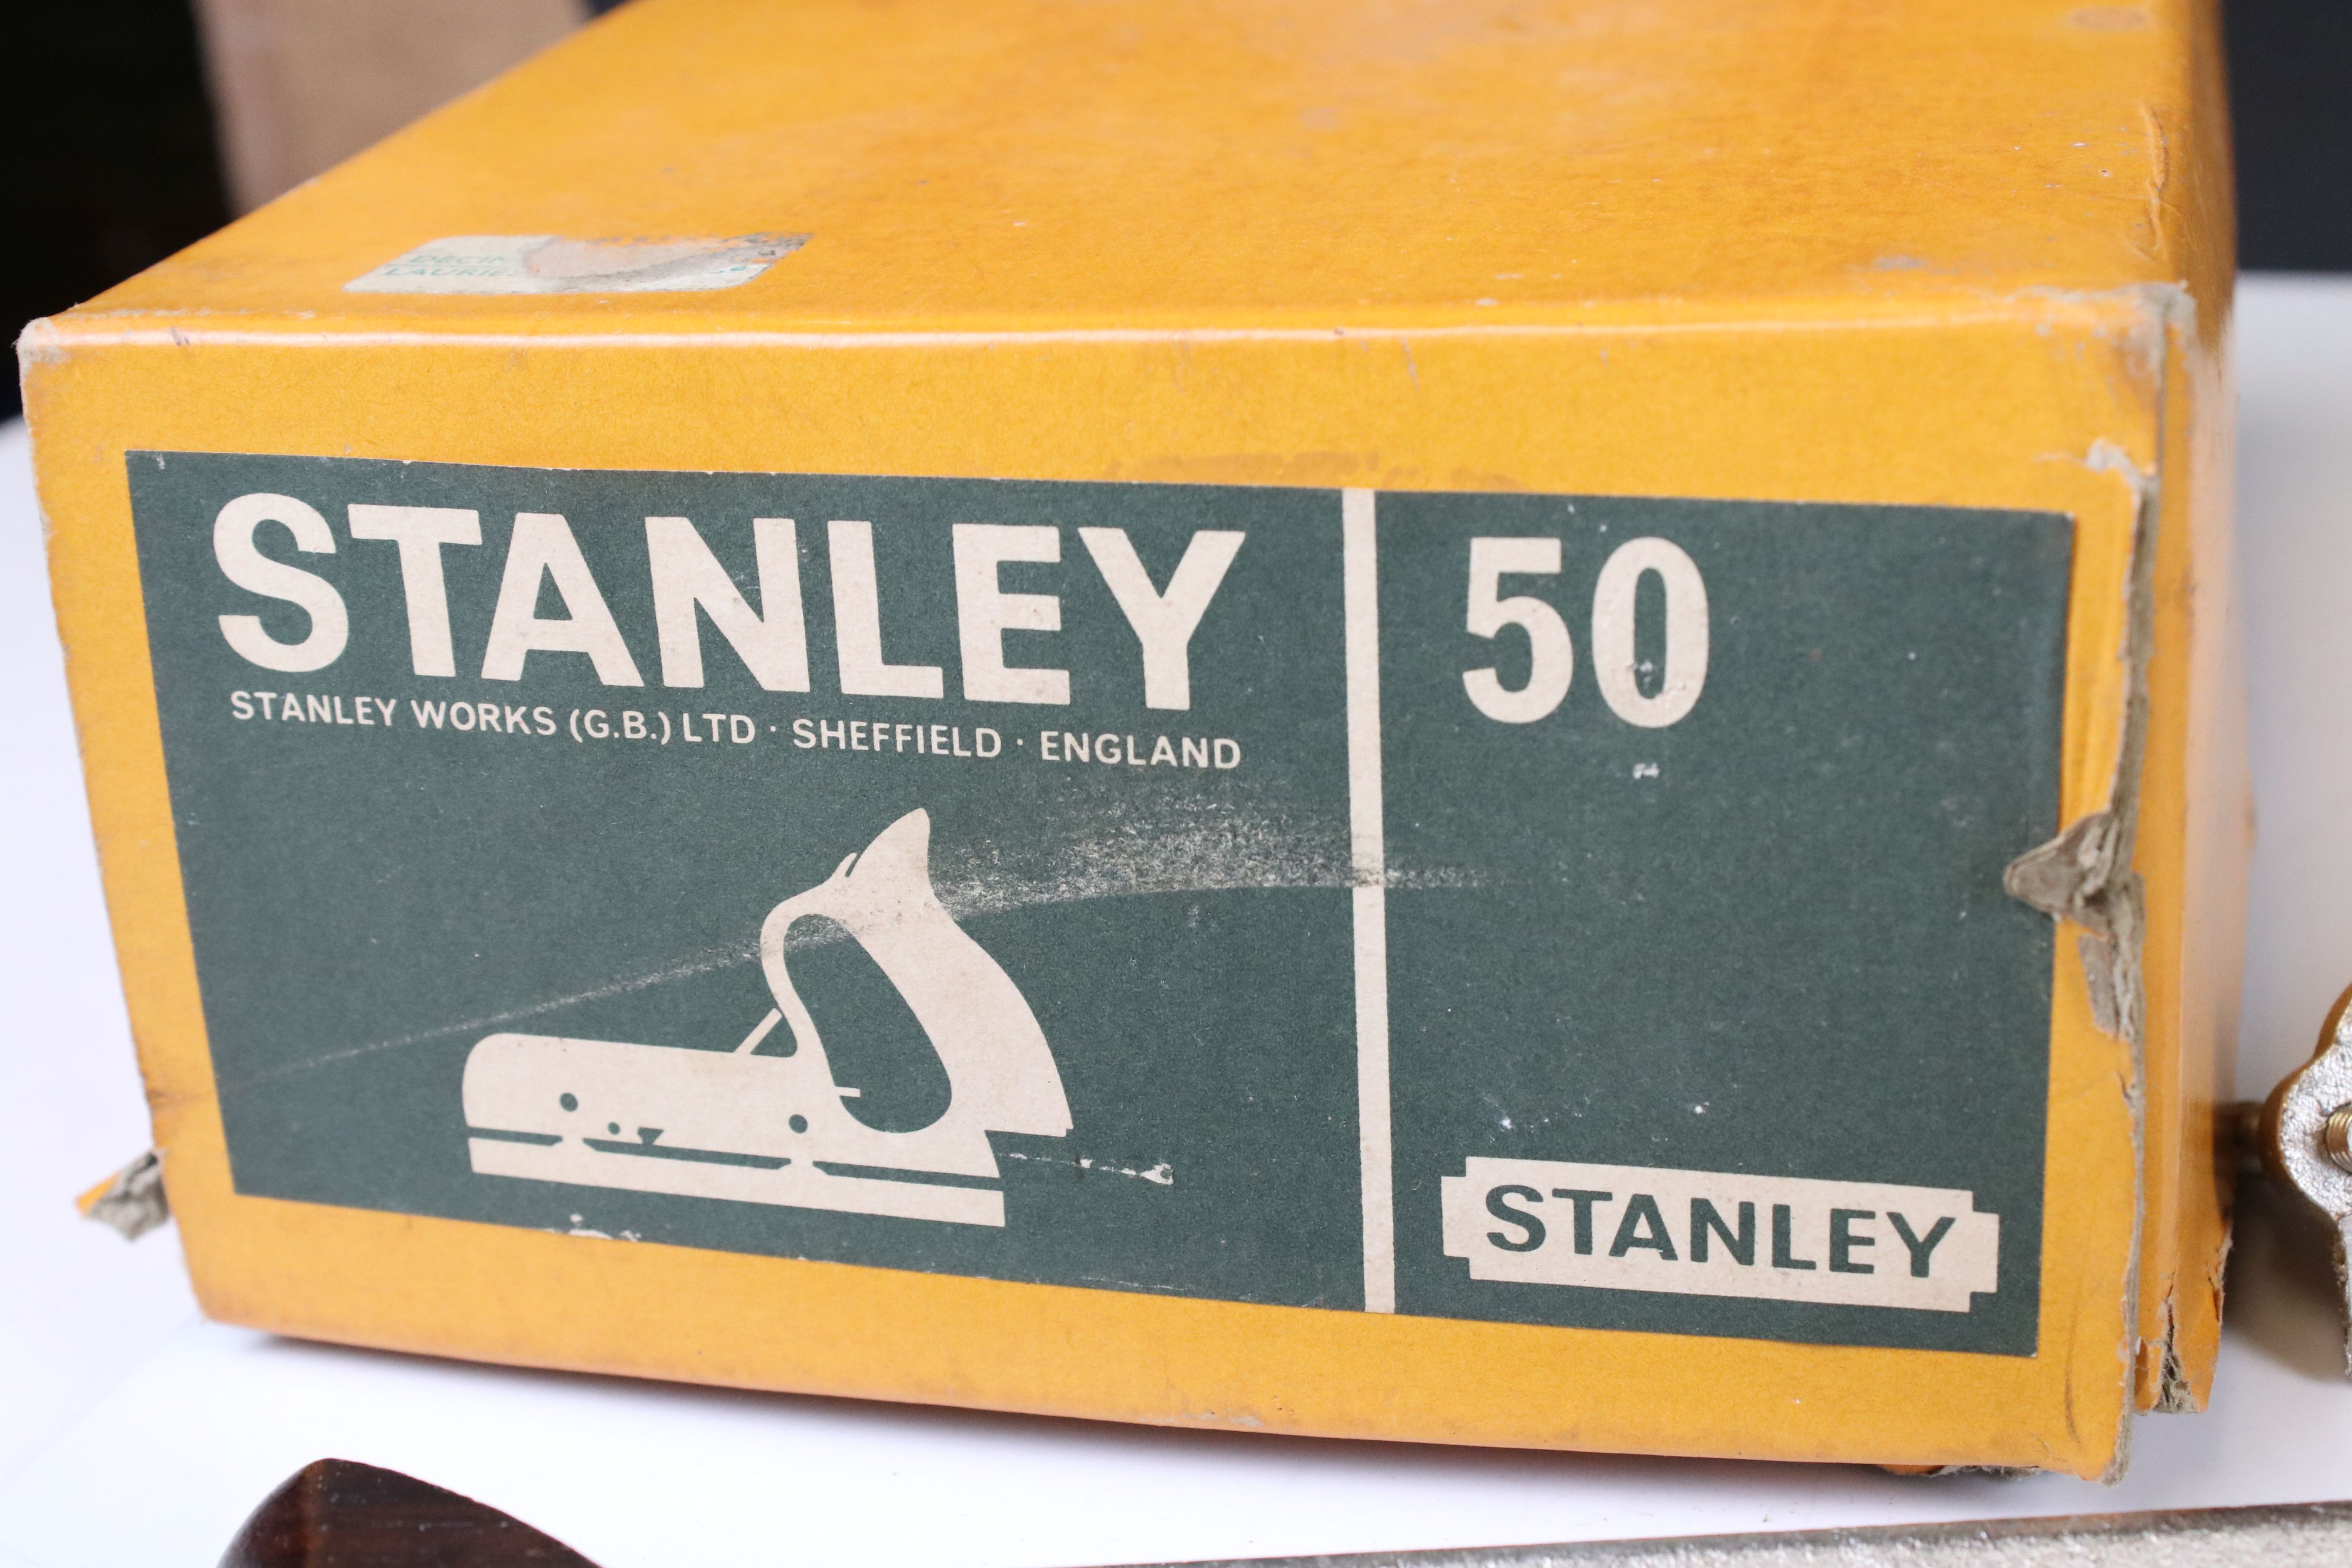 Boxed Stanley No. 50 Combination Plane together with a Stanley No. 71 Router Plane - Image 7 of 7